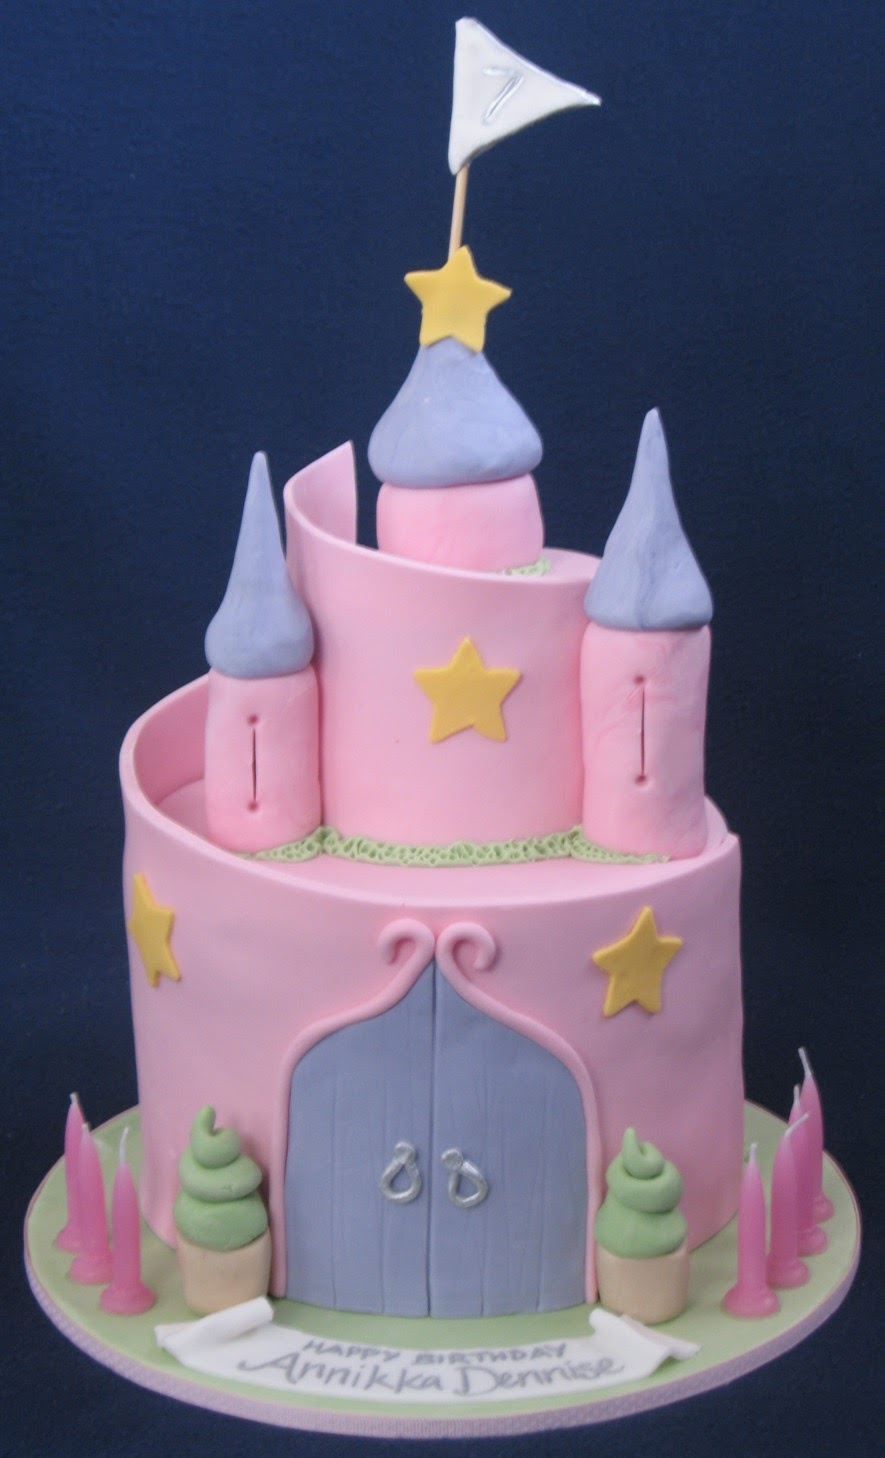 Blissfully Sweet A Princess Castle Cake For A 7 Year Old Princess